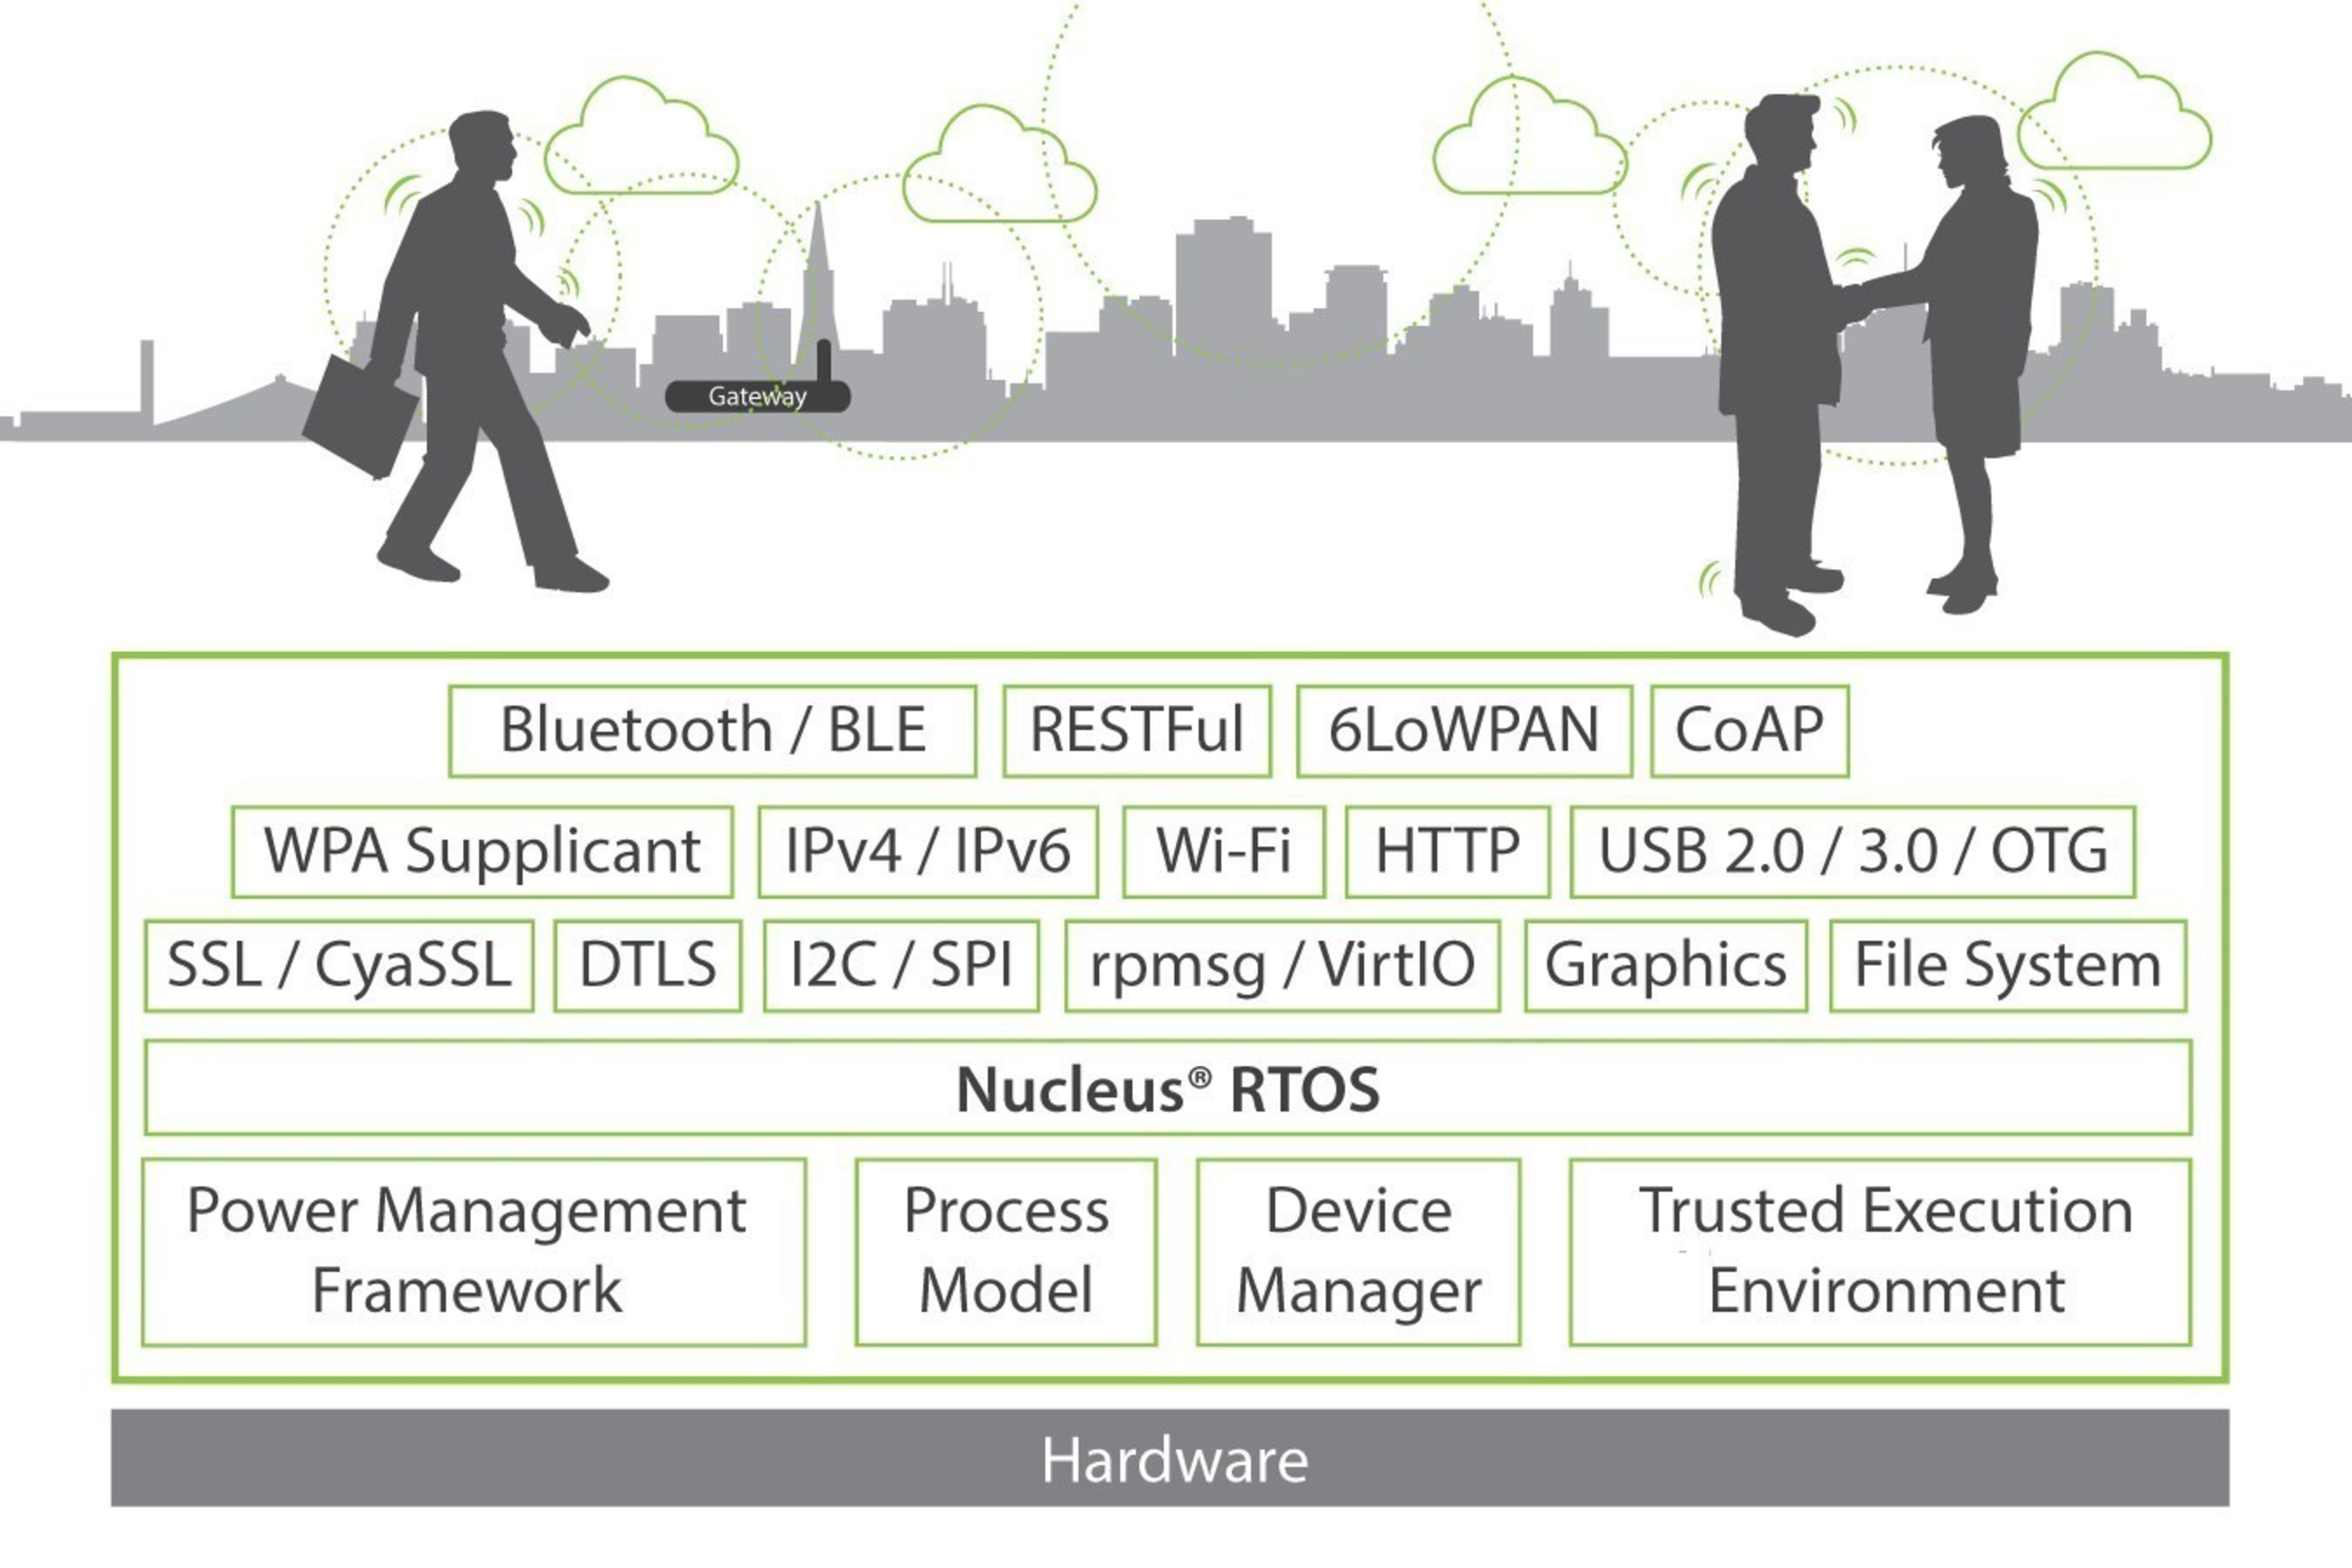 The full-featured capabilities of the Mentor Graphics Nucleus real-time operating system (RTOS) supports both device-to-device and device-to-cloud communications.